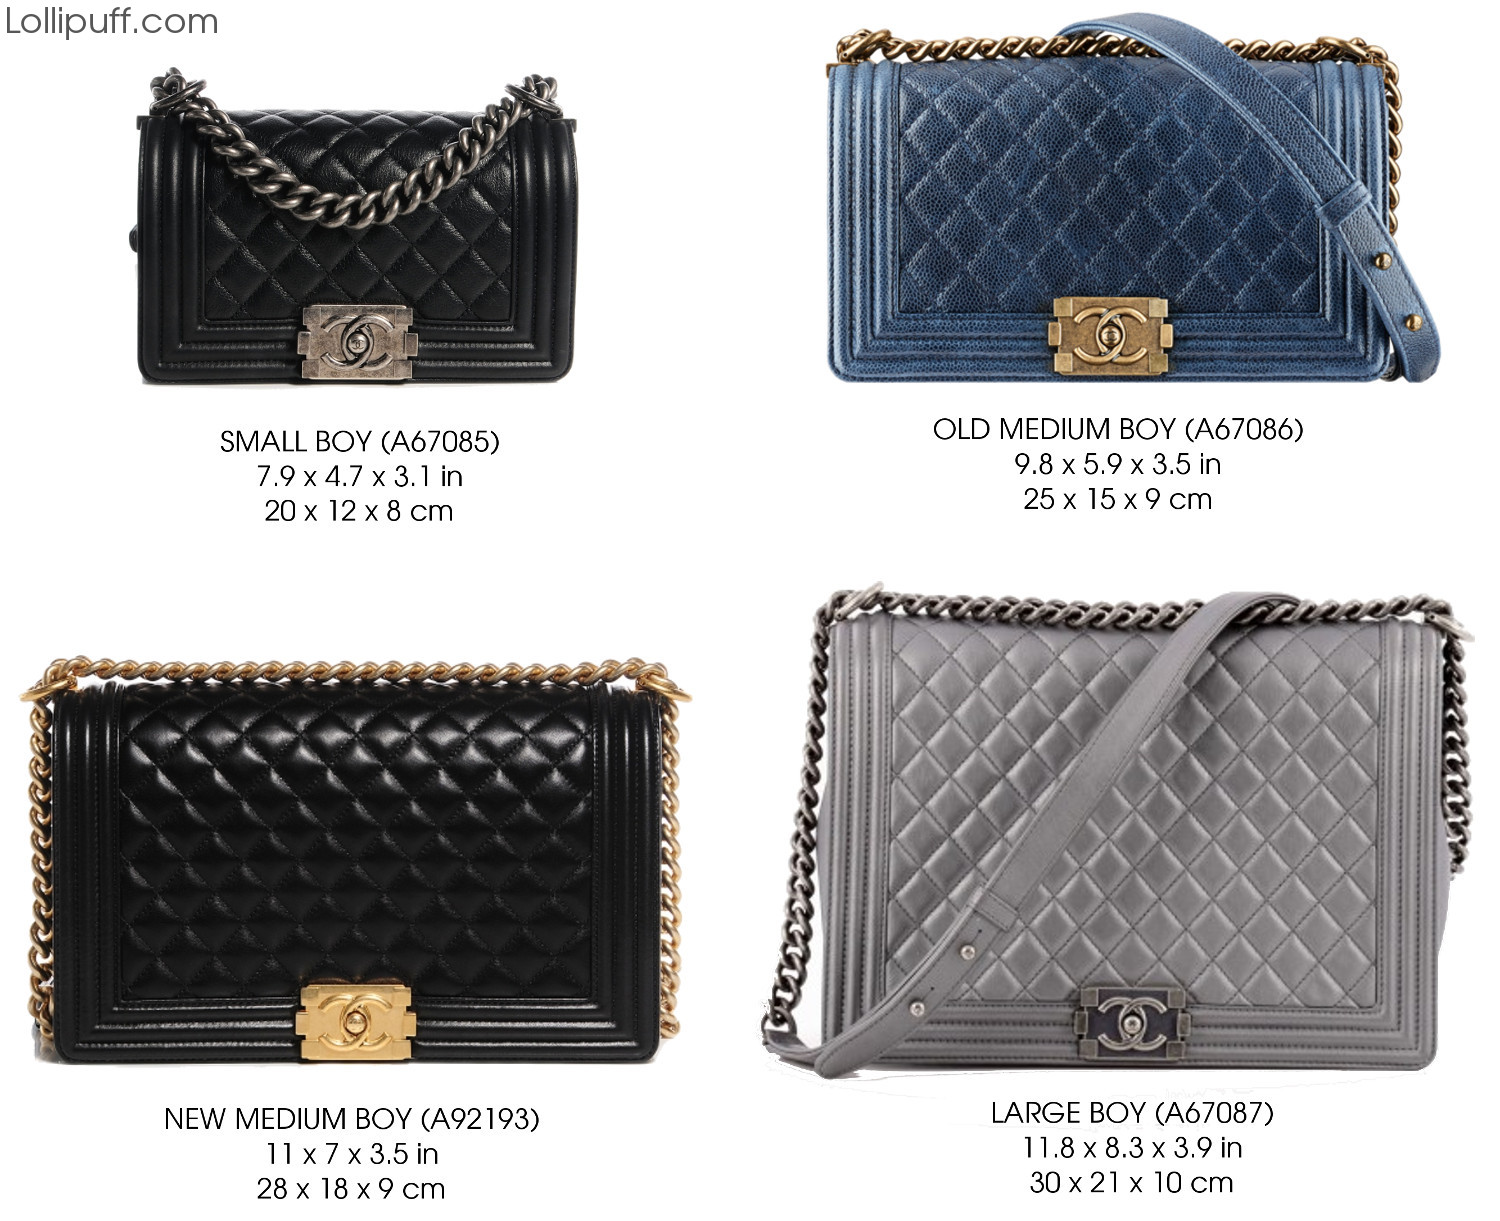 8f1477a0b494 Chanel Boy Bag Size Guide | Lollipuff